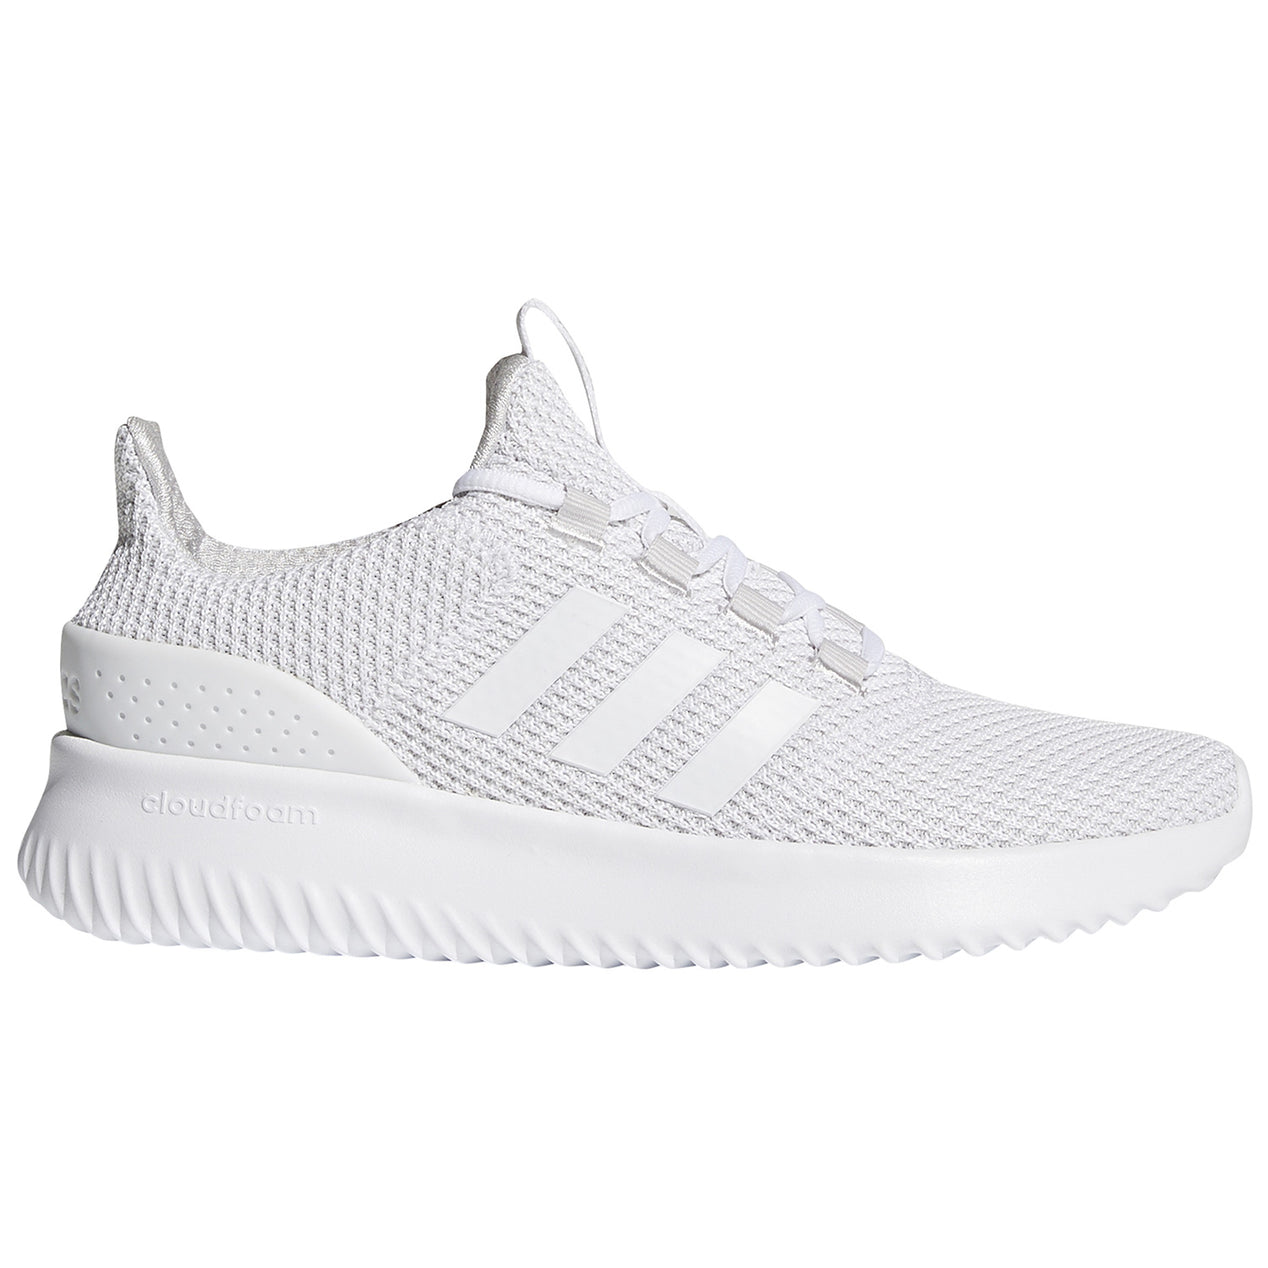 pretty nice 60abd c2461 ... Chaussures de course Cloudfoam Ultimate FemmeGrey One F17 - Ftwr White  - Grey Two F17 ...